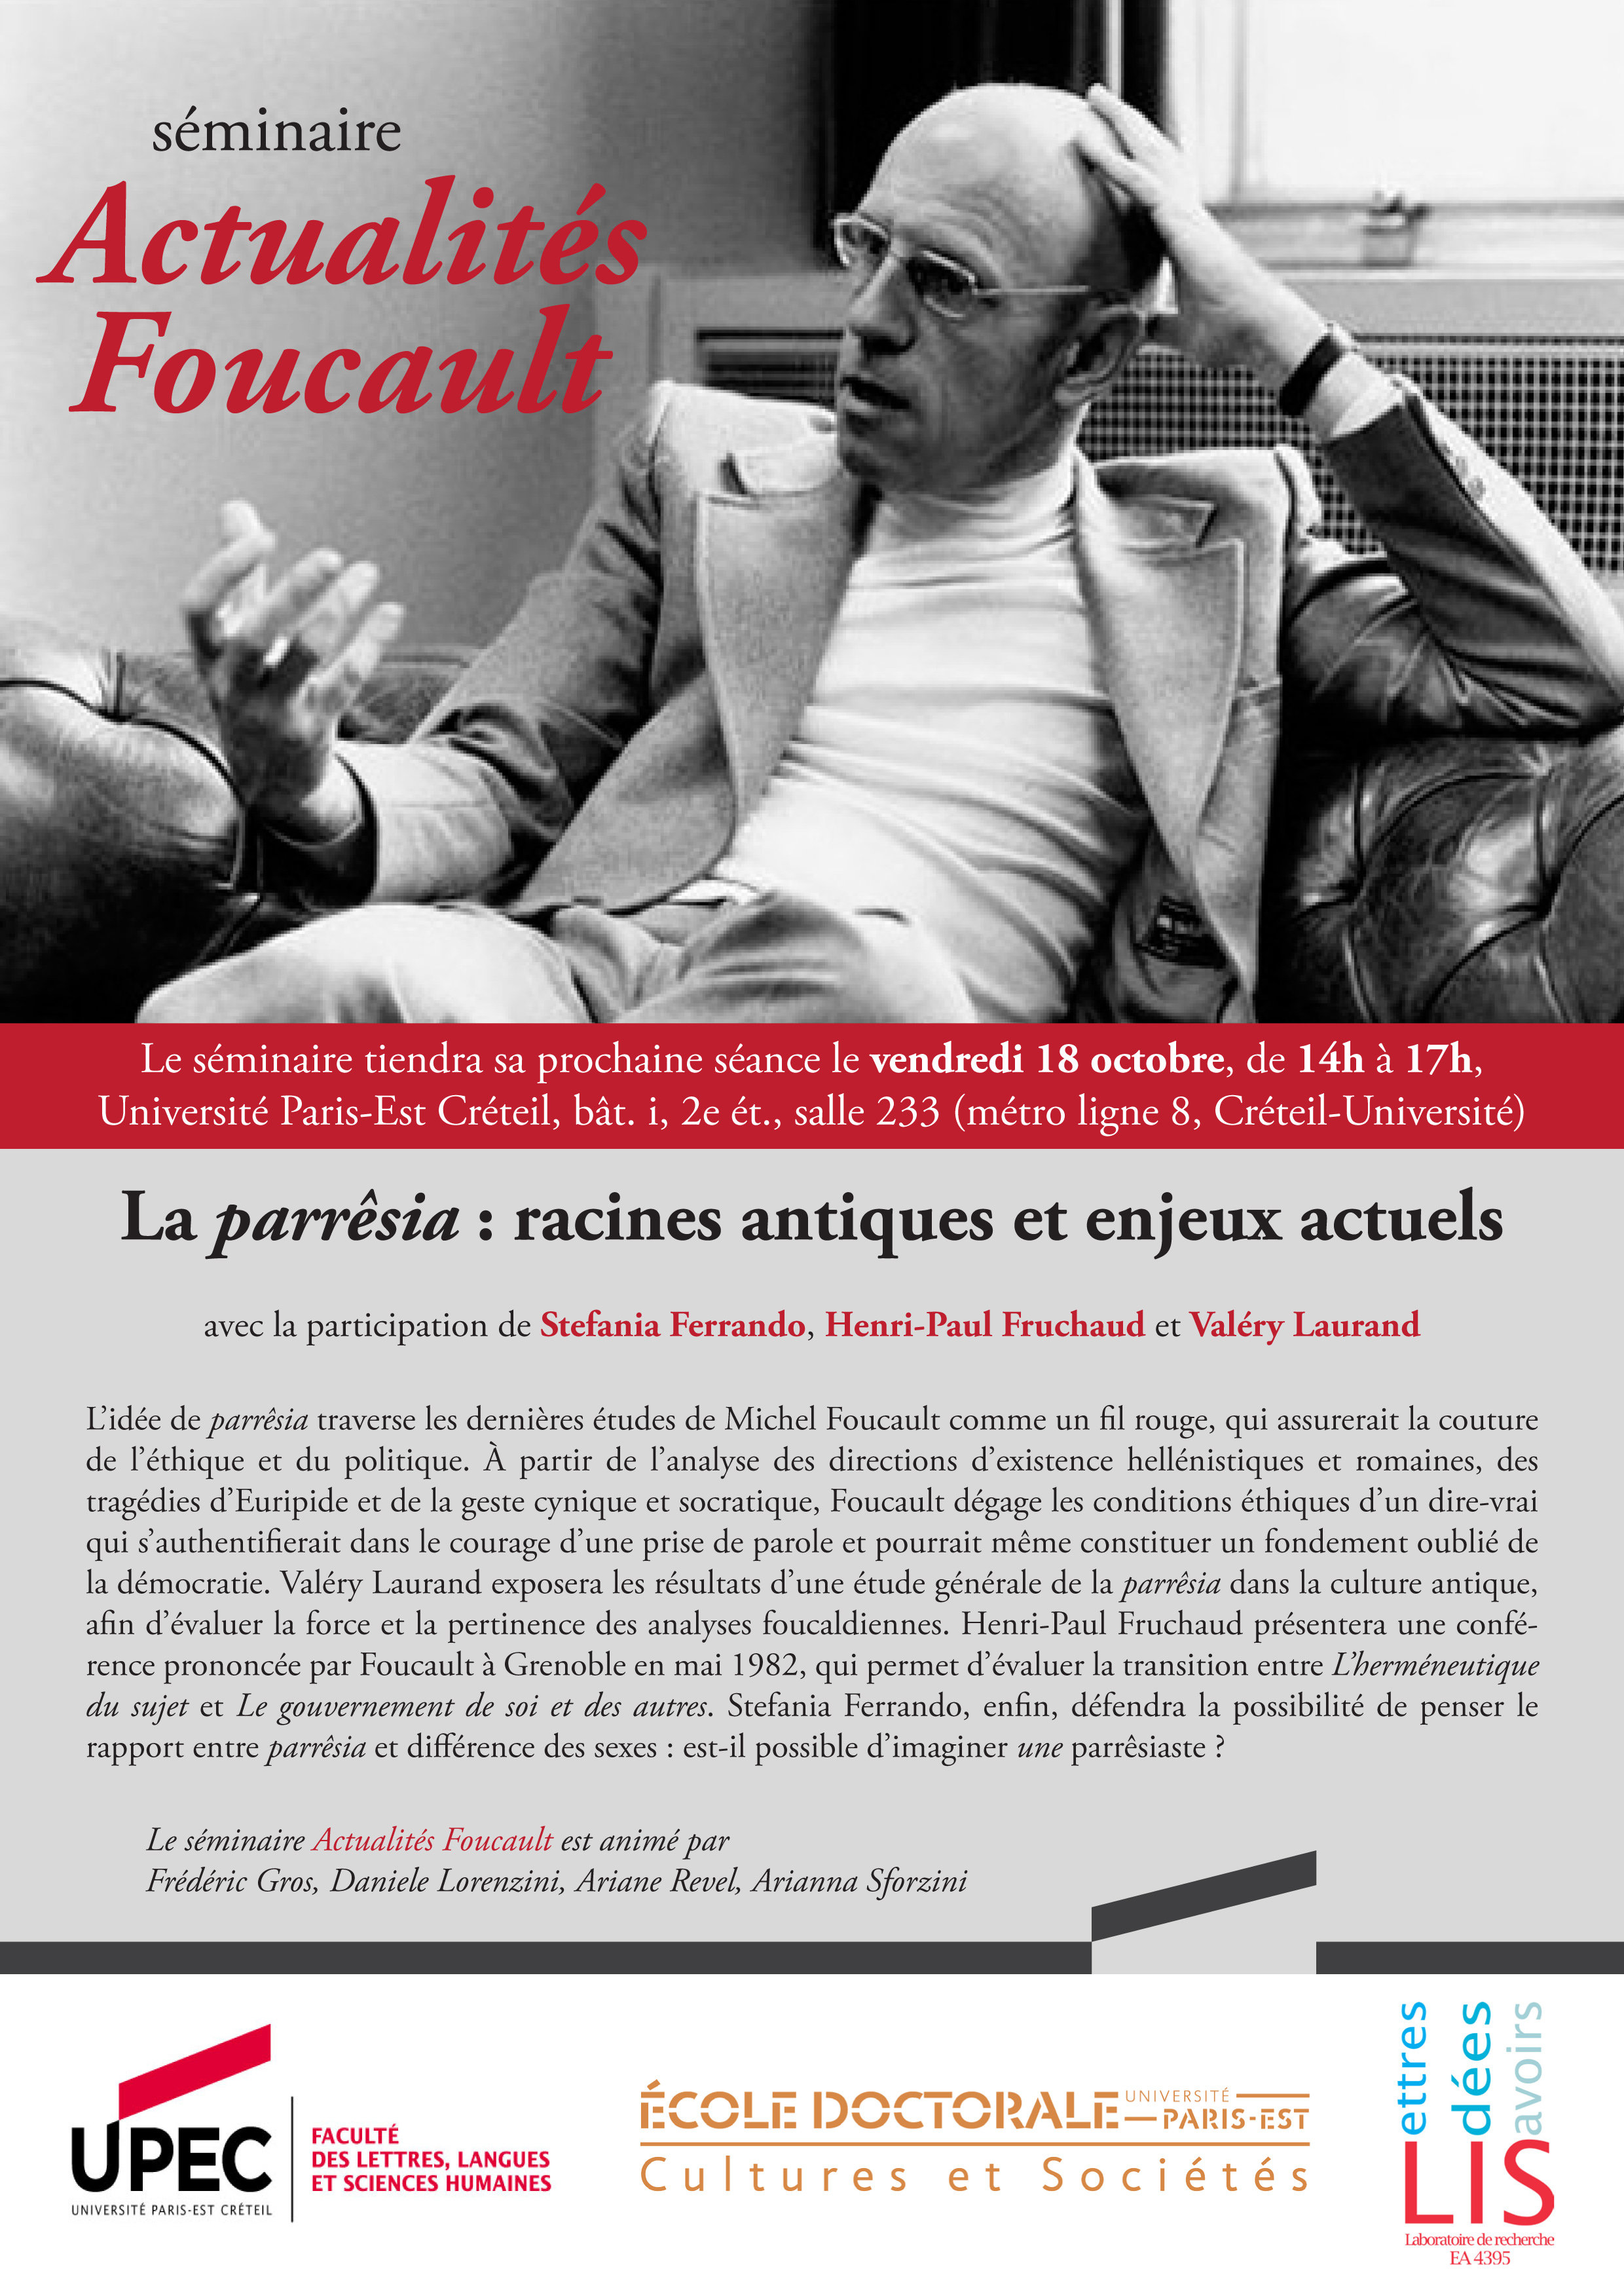 the foucault effect essays on governmentality Educ pesqui, são paulo, v 39, n 4, p 1067-1087, out/dez 2013 1067 a brief genealogy of governmentality studies: the foucault effect and its developments an.